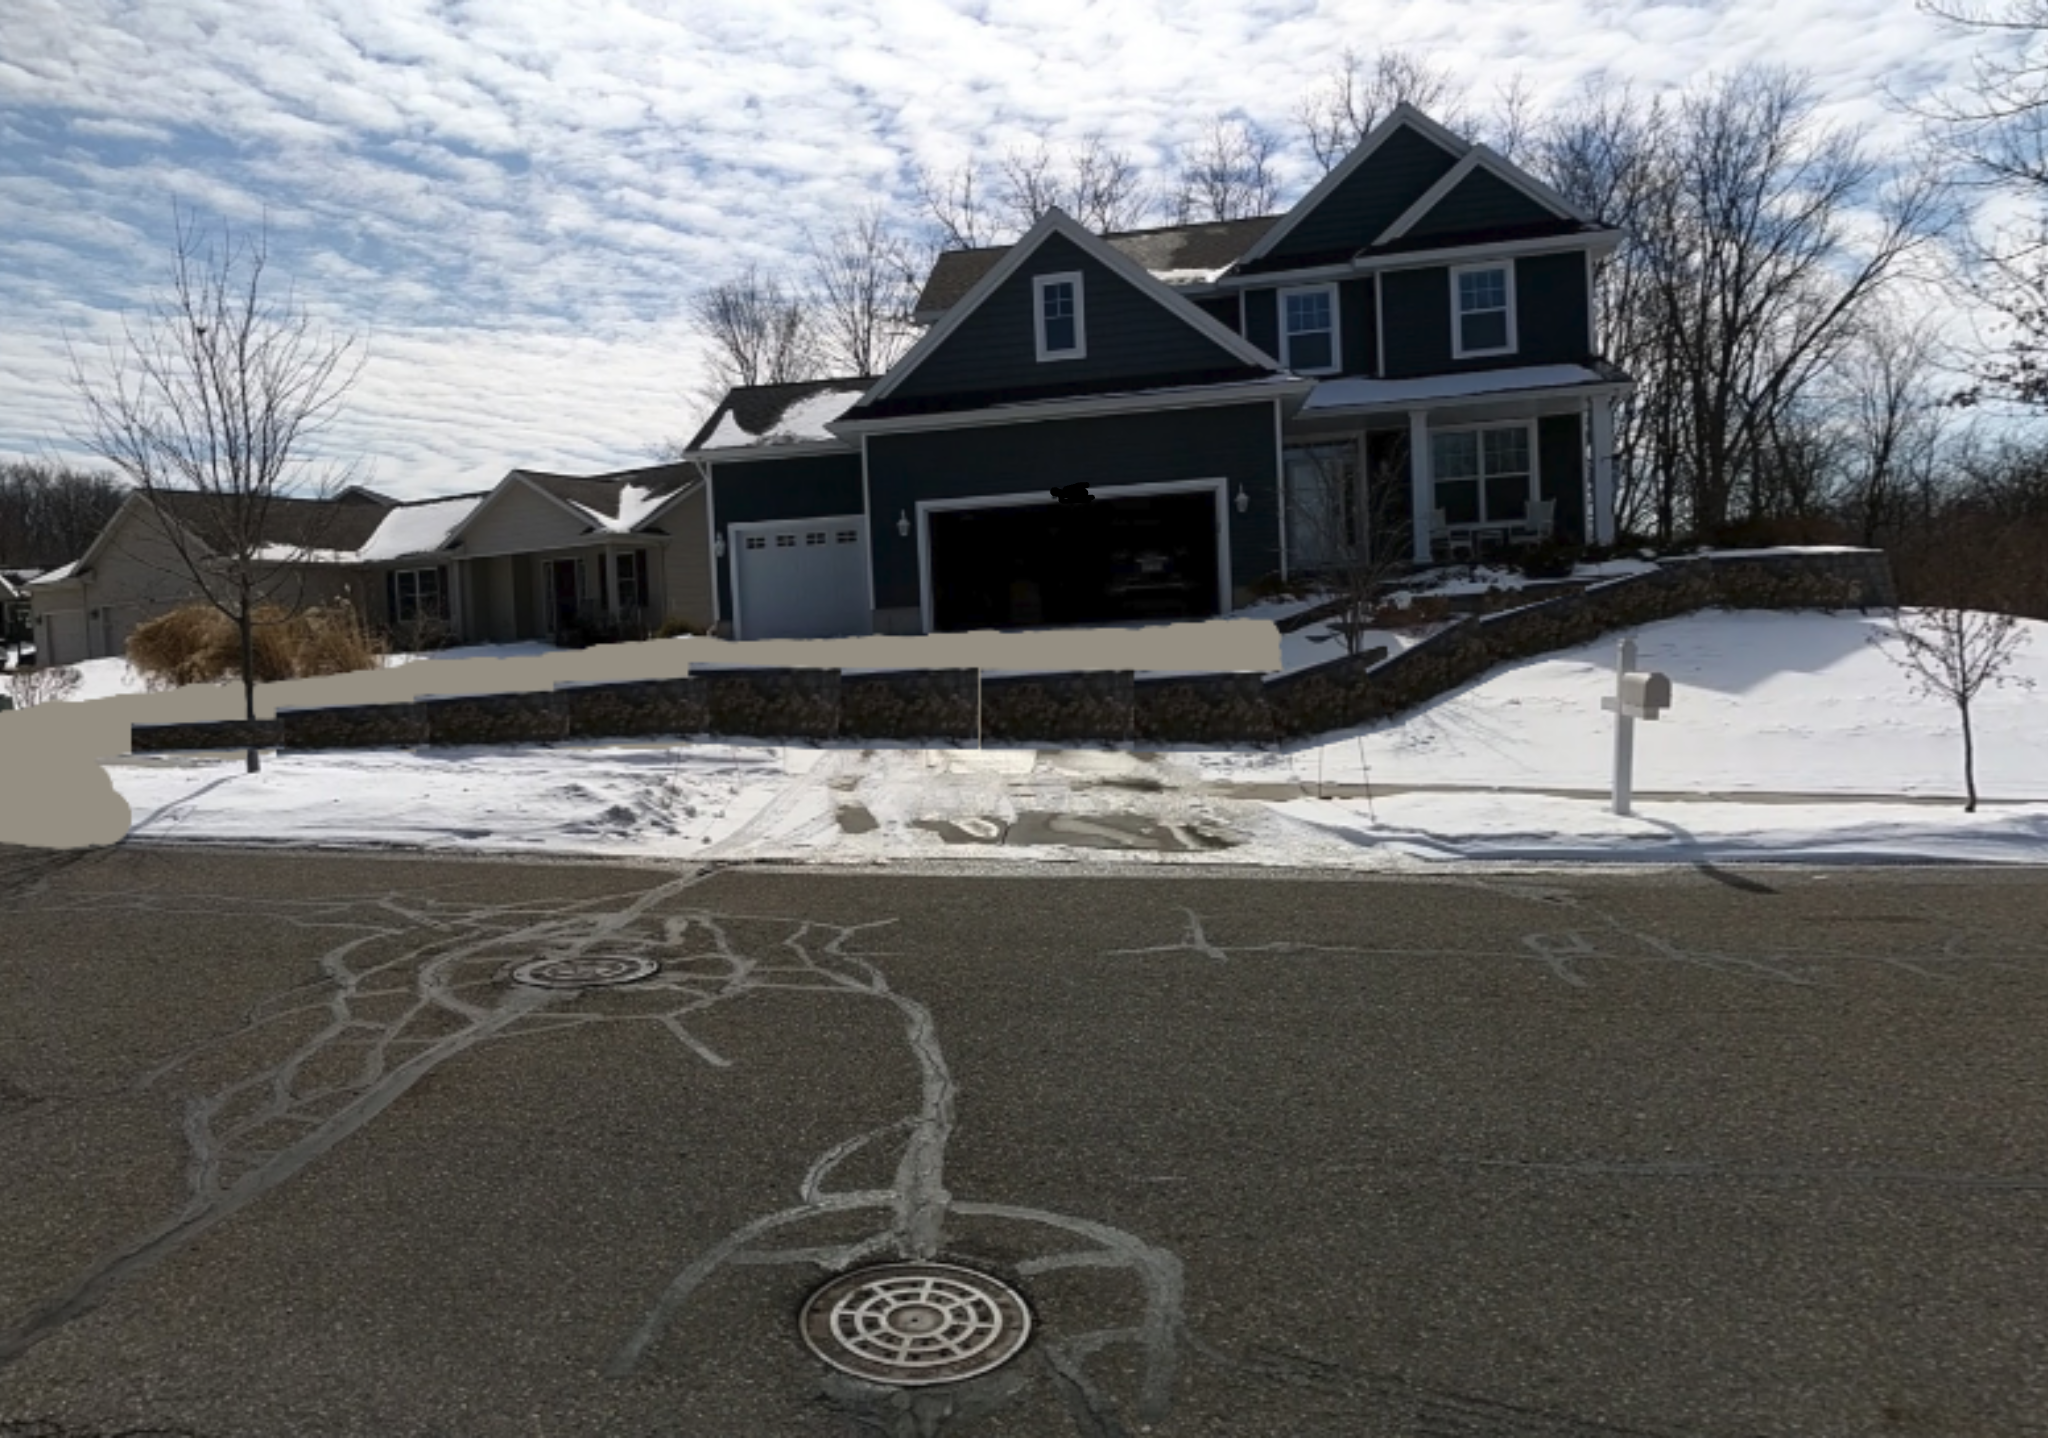 Reconstructing Driveway to Create Flat Area-1059679409_1552135757188.png